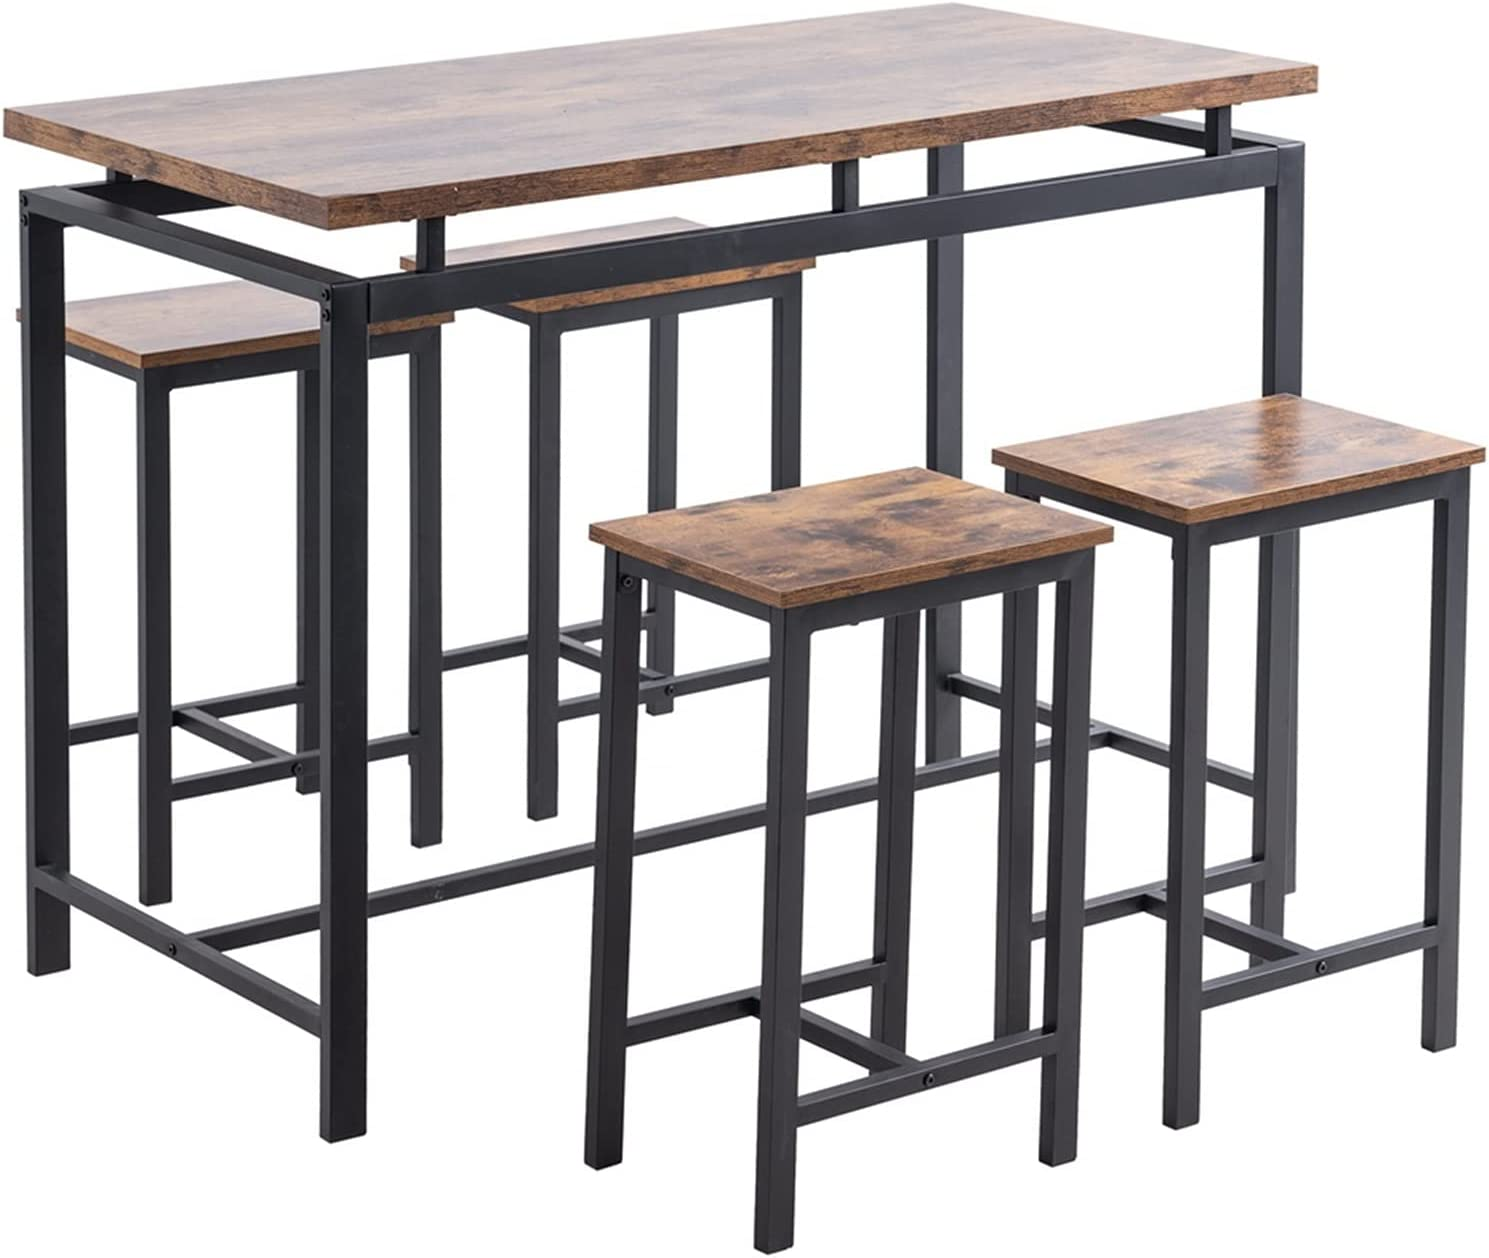 ZEHYANG Hick Wood Black Wooden Table Max 71% OFF And Set Stools 4 Dining Selling